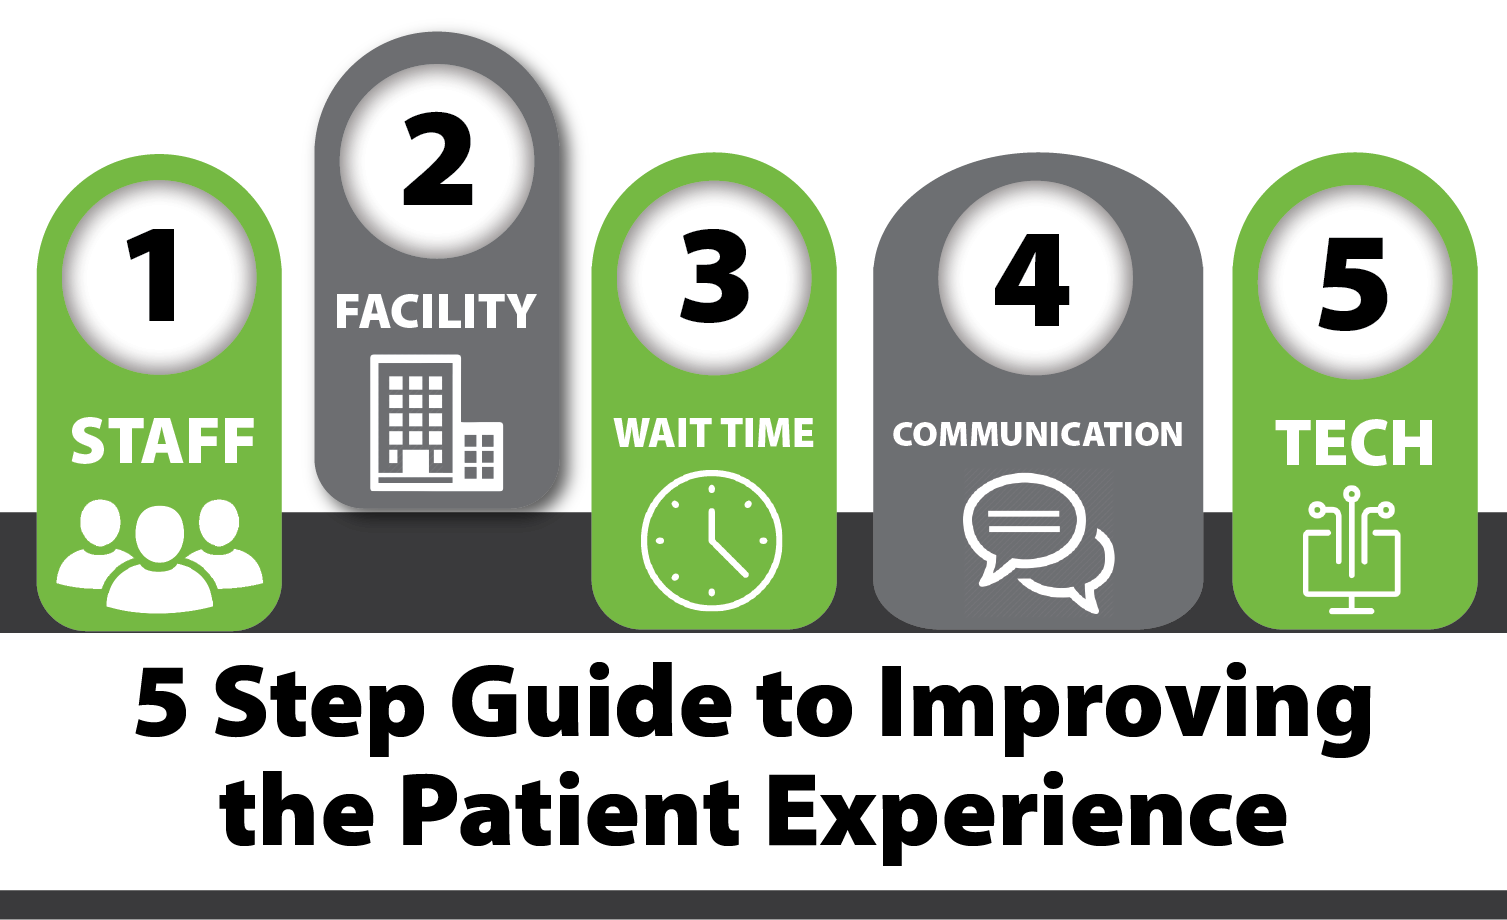 5 Step Guide to Improving the Patient Experience_Facility